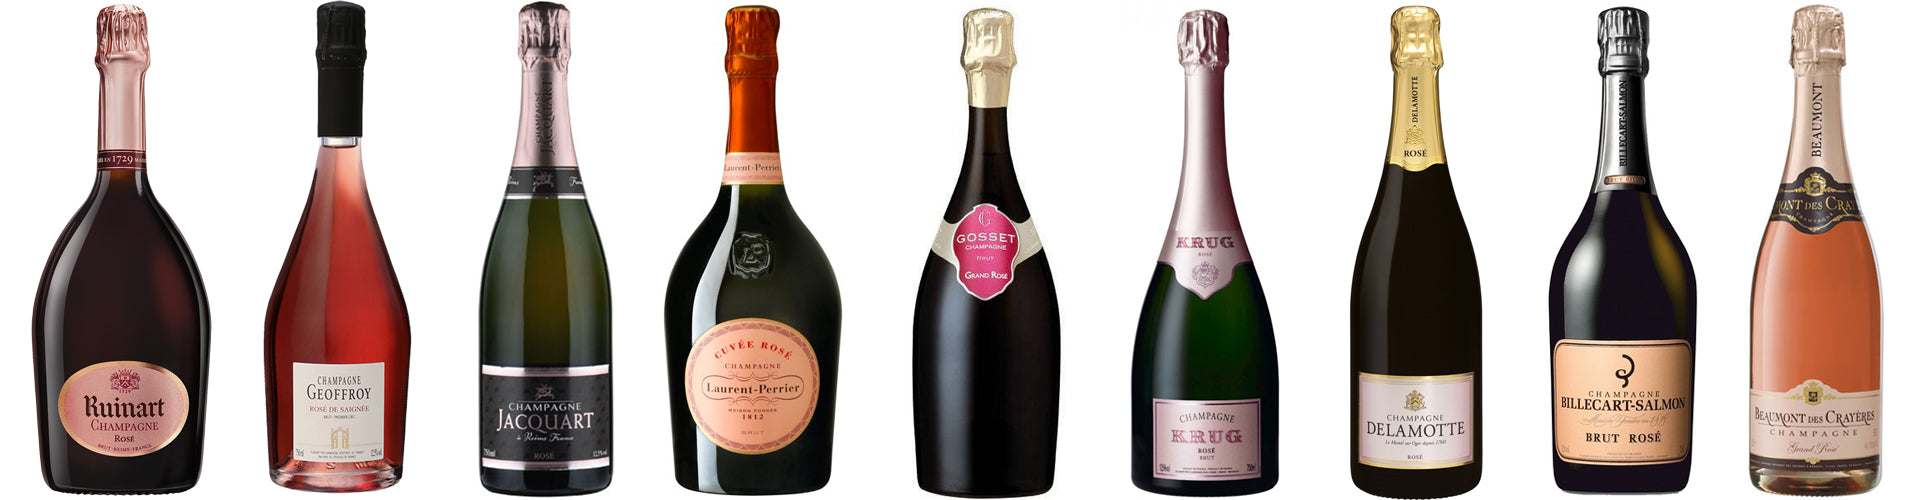 Collection of Assorted Rosé Champagne Bottles